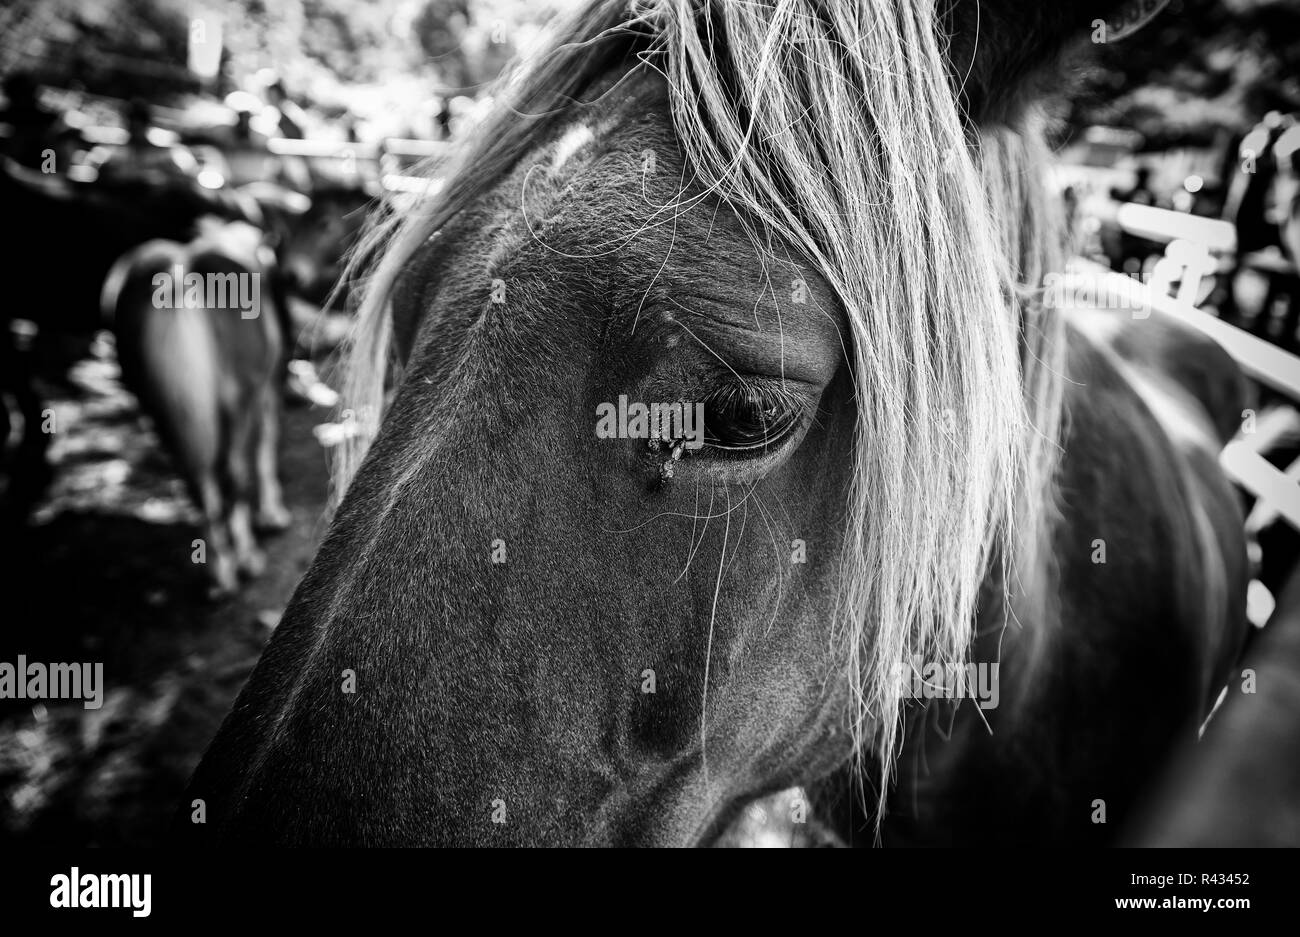 Wild horse, detail of a wild mammal in the wild, animal farm, strength and nature - Stock Image